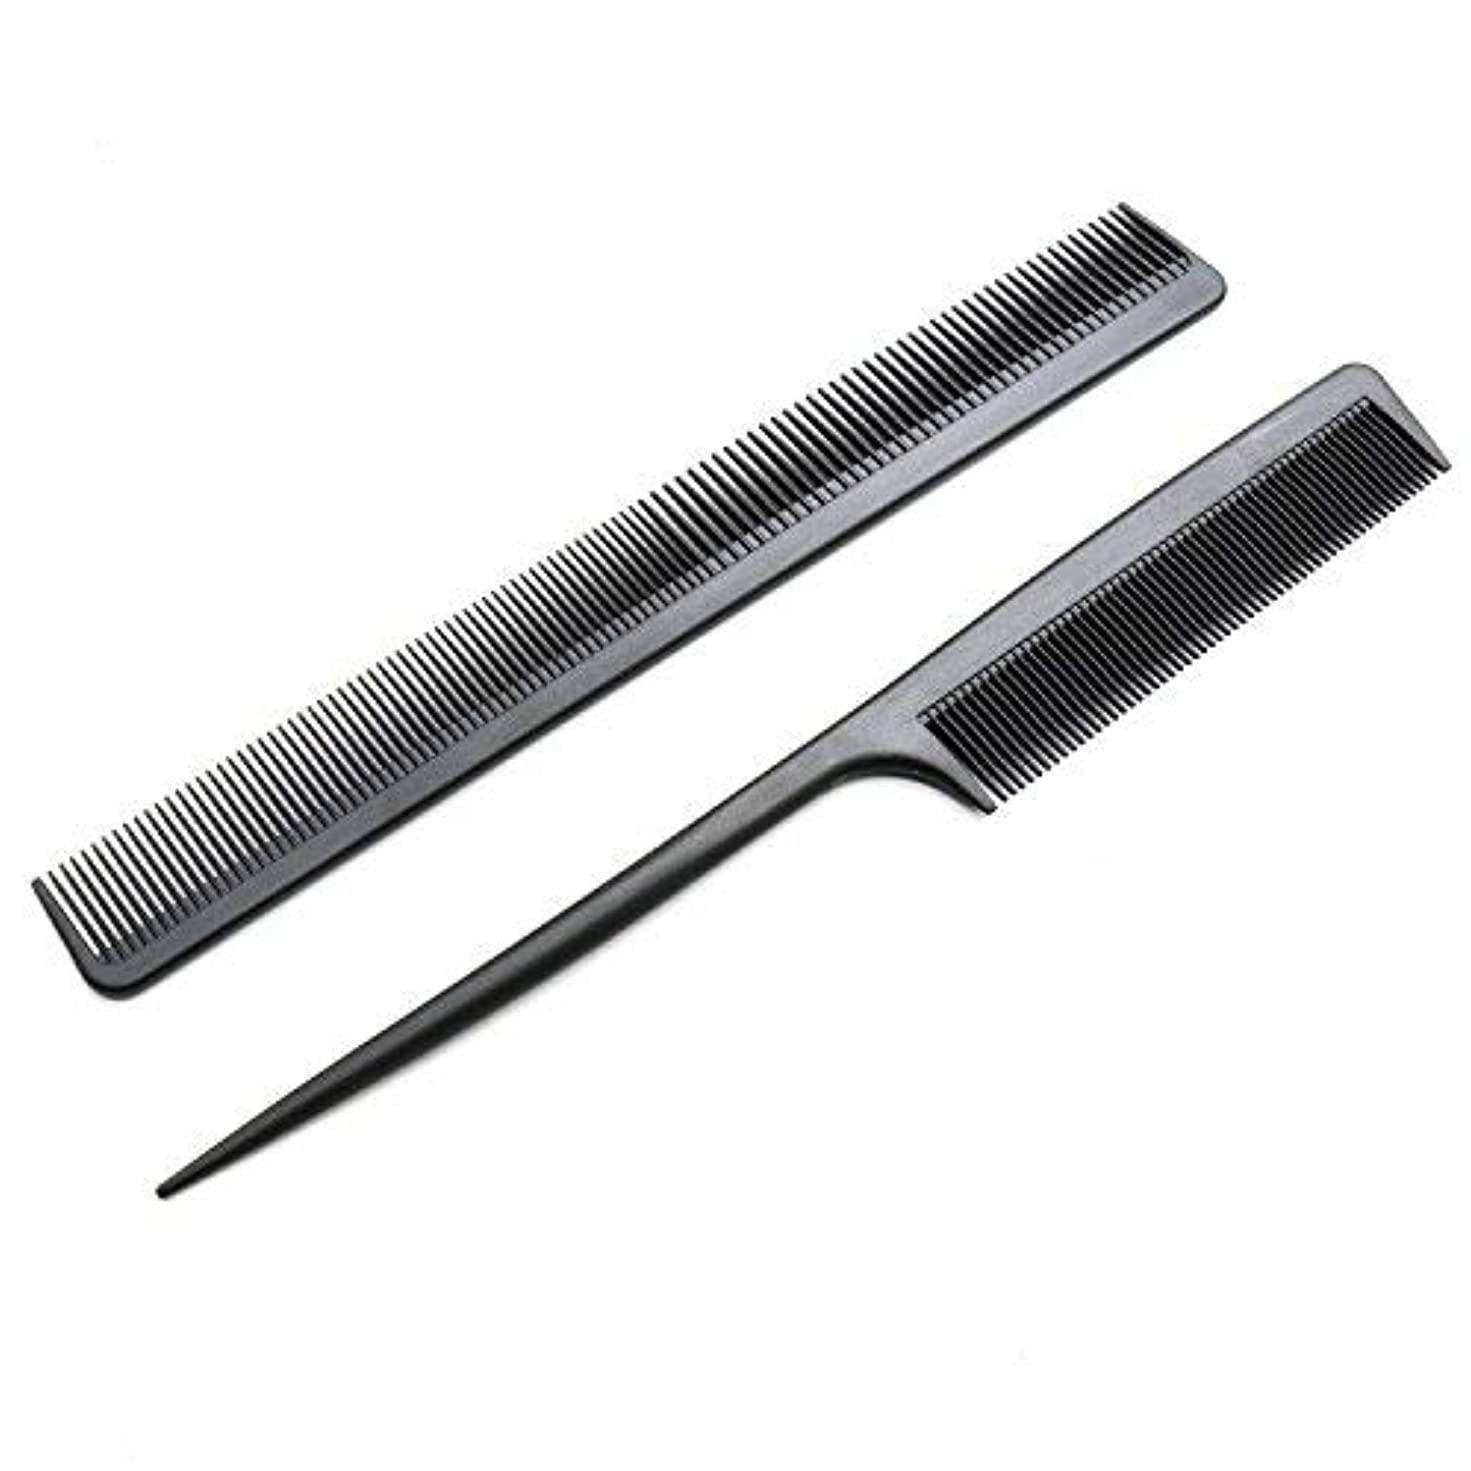 ドアミラー意志配送2 Pack Carbon Fiber Anti Static Chemical And Heat Resistant Tail Comb For All Hair Types,Black [並行輸入品]